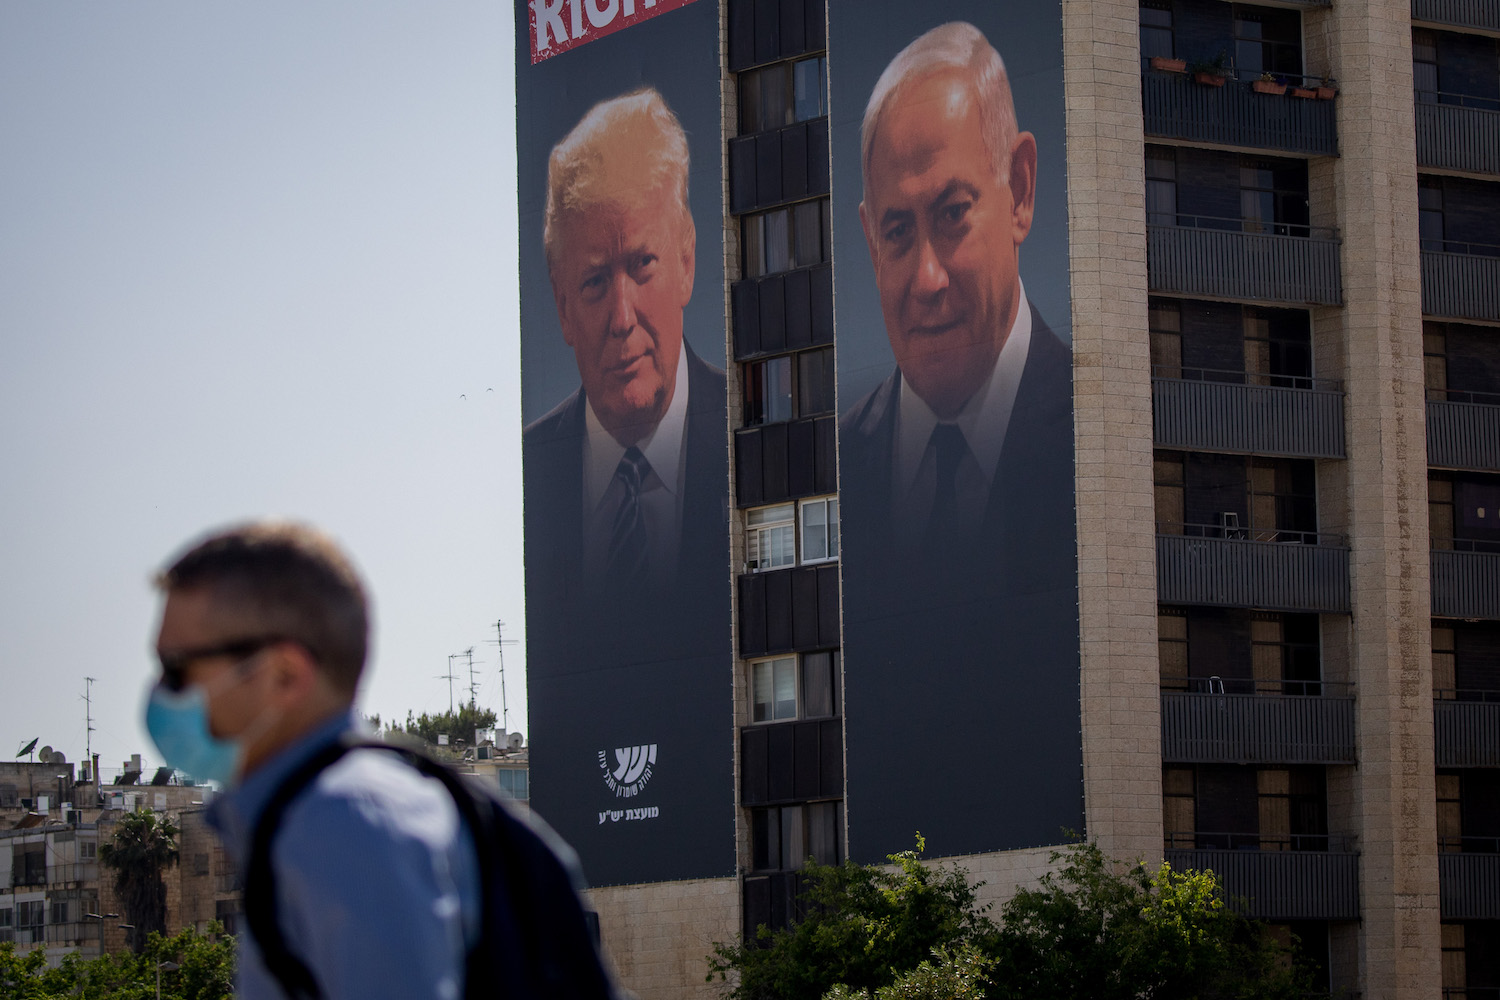 A large billboard depicting U.S. President Donald Trump and Israeli Prime Minister Benjamin Netanyahu, as part of a new campaign by the Yesha Council in support of annexation, Jerusalem, June 10, 2020. (Yonatan Sindel/Flash90)